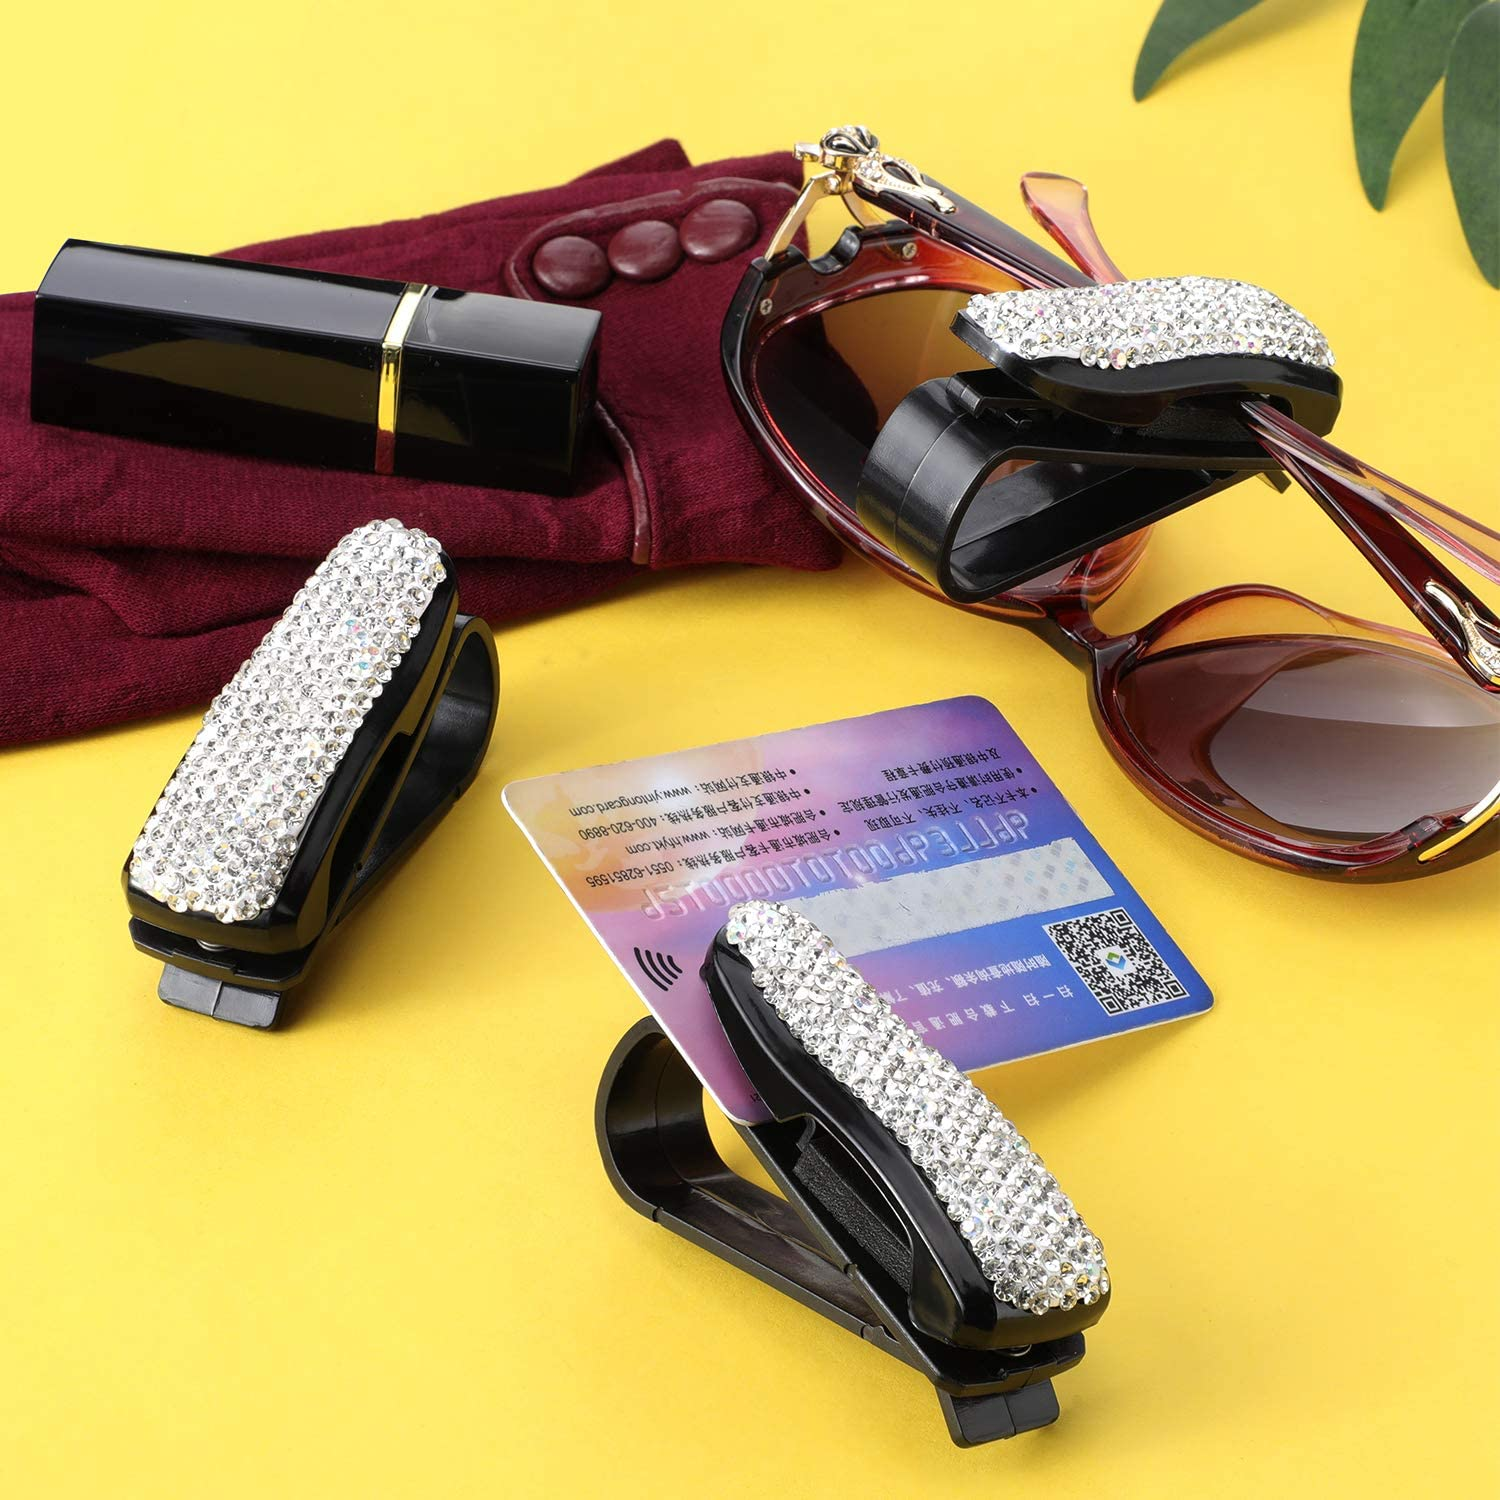 Boao 6 Pieces Glass Holders Crystal Rhinestones Car Sunglasses Clip Holders Car Eyeglasses Clip for Car Sun Visor Car Accessories Supplies